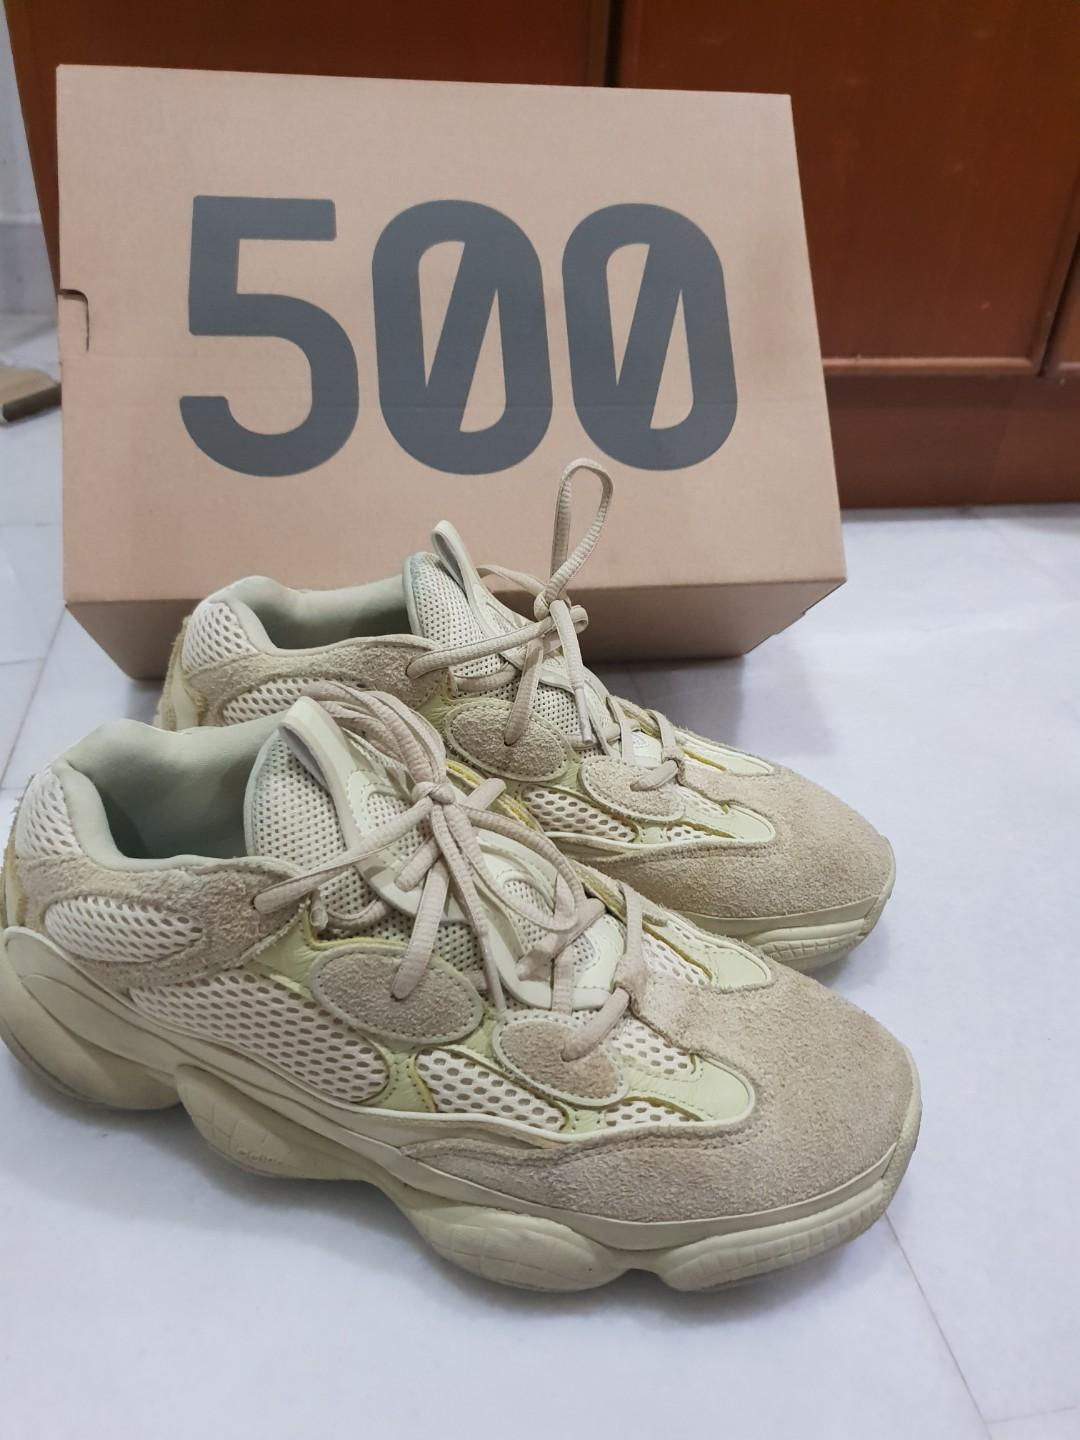 promo code 8e97e d4847 Adidas yeezy 500 super moon yellow, Men's Fashion, Footwear ...